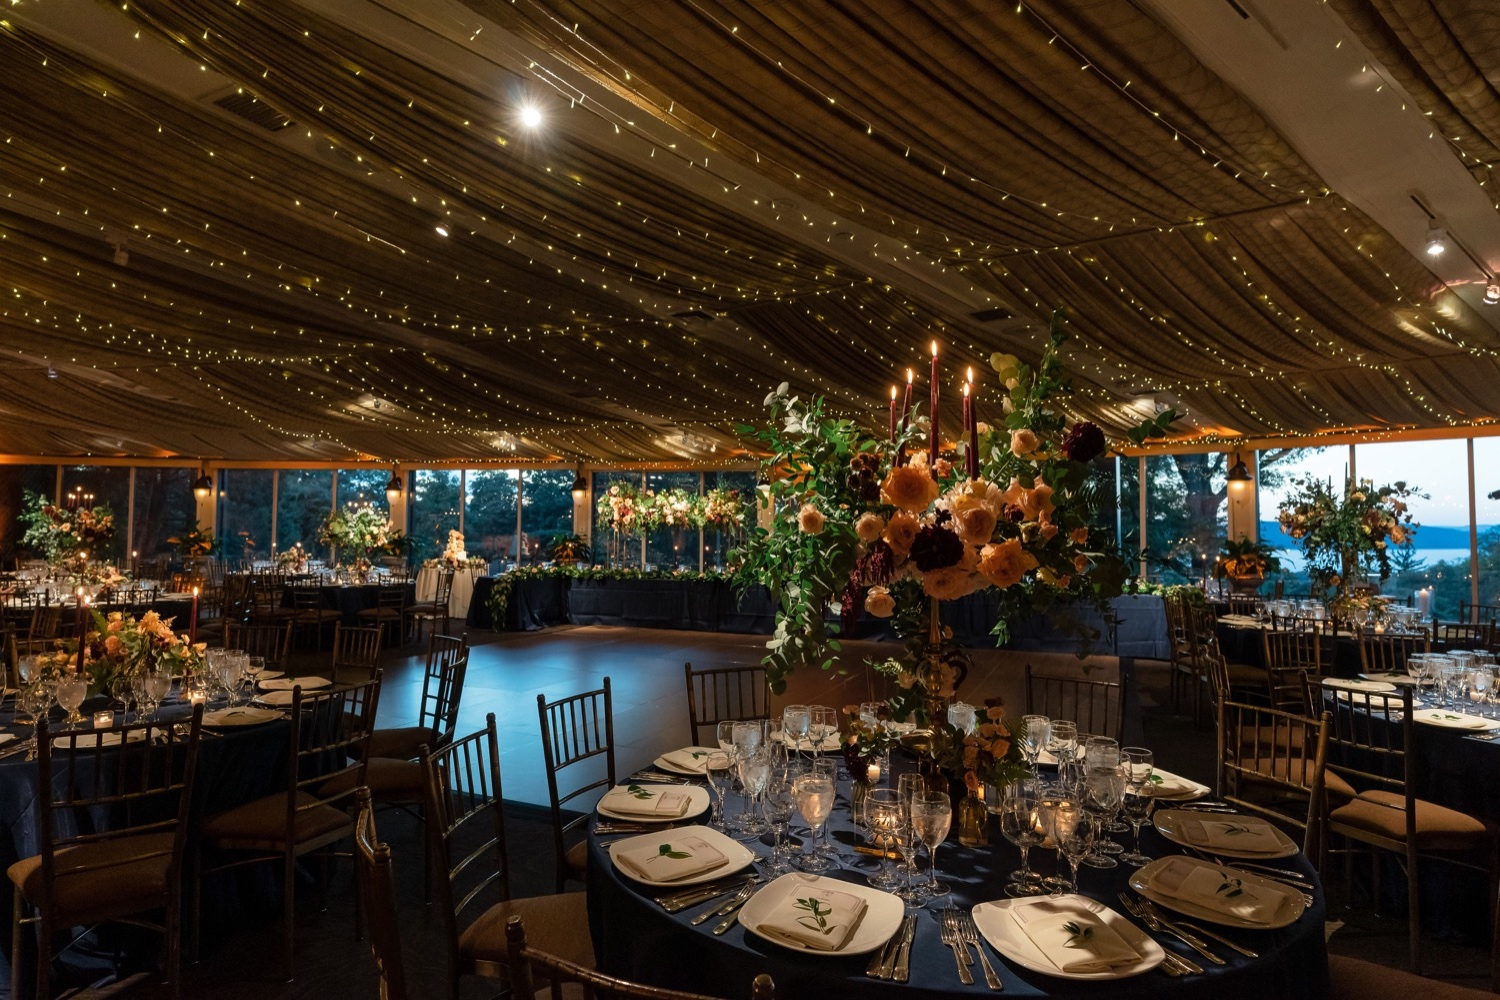 Wedding reception setting at the Tappan Hill Mansion.